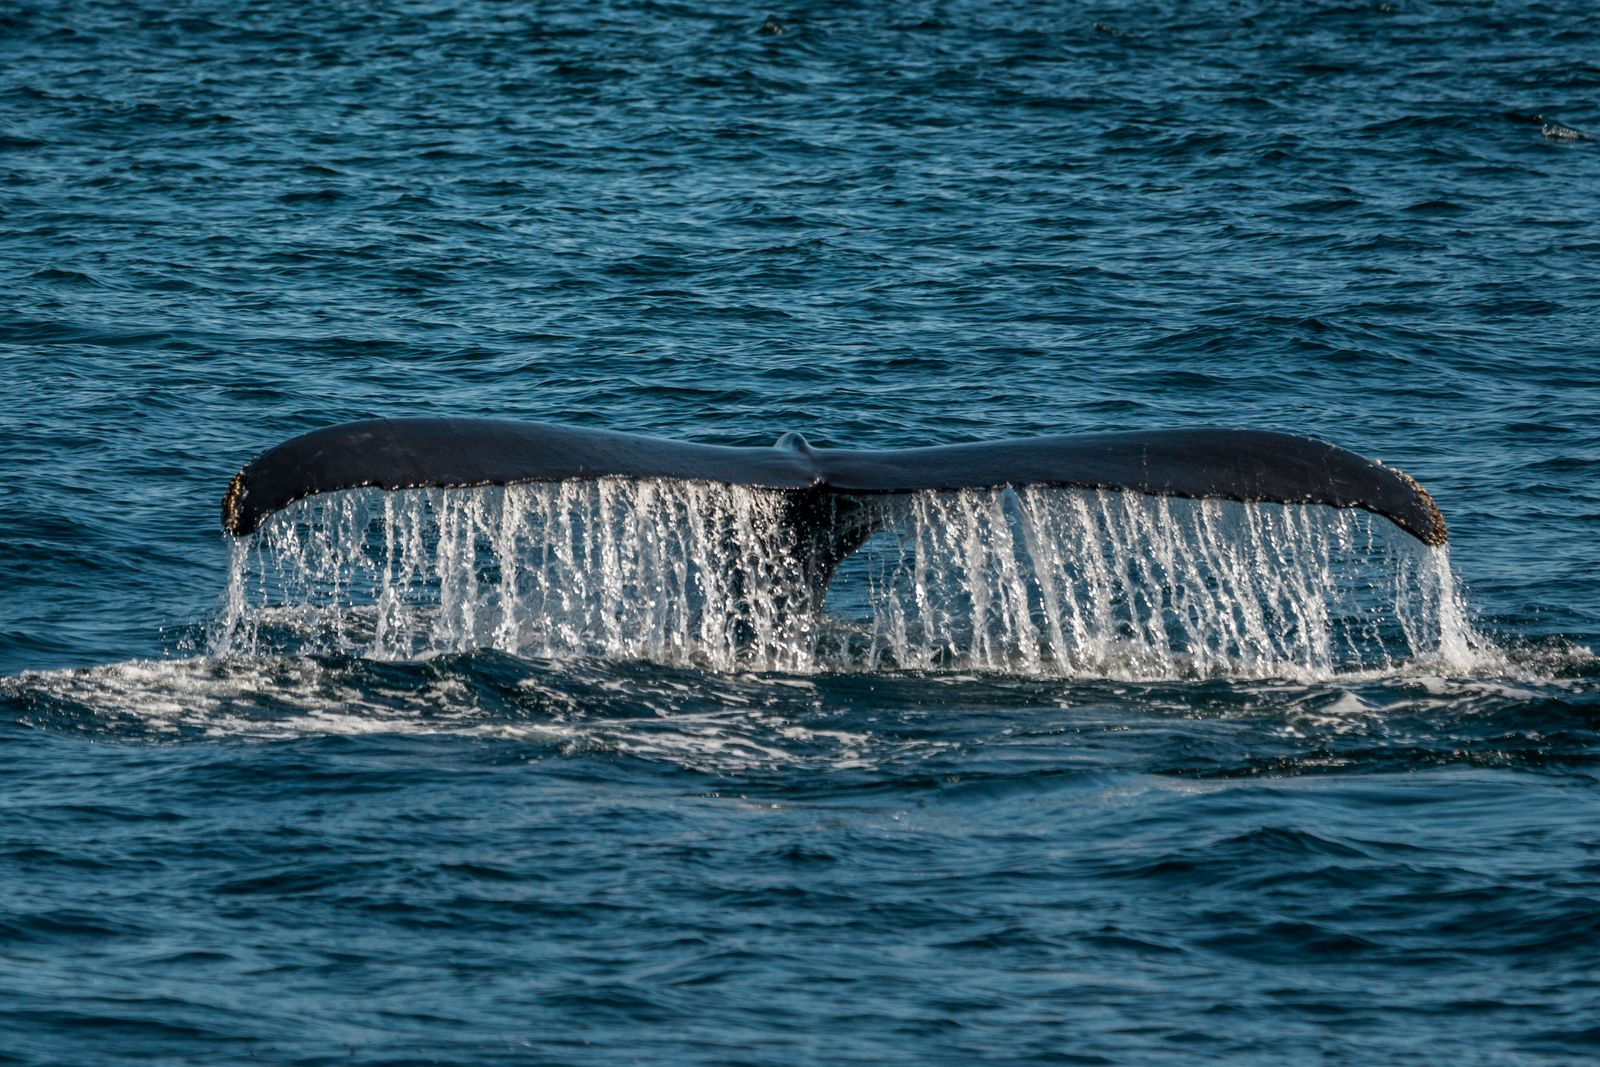 An adult humpback whale dives beneath the surface in the waters of Cape Cod, along the eastern coast of the United State